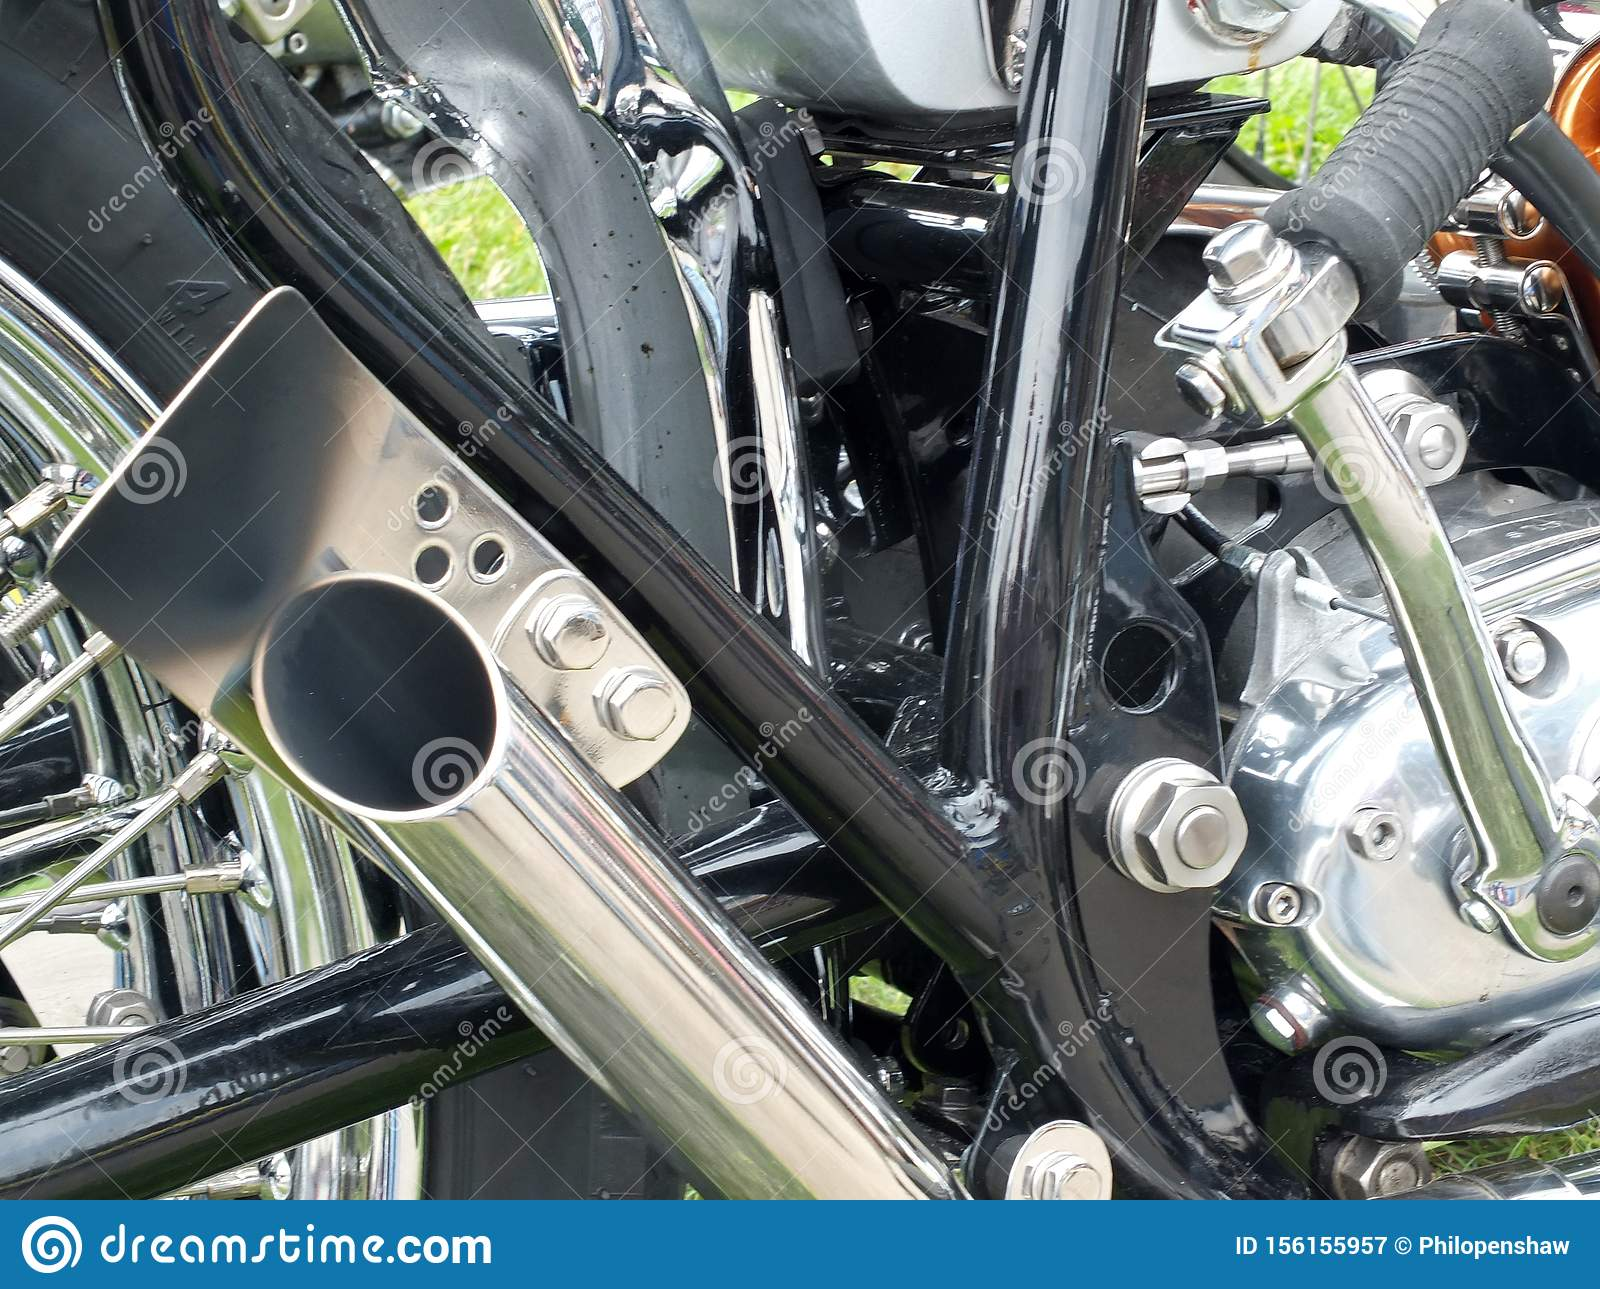 2 963 Custom Exhaust Photos Free Royalty Free Stock Photos From Dreamstime